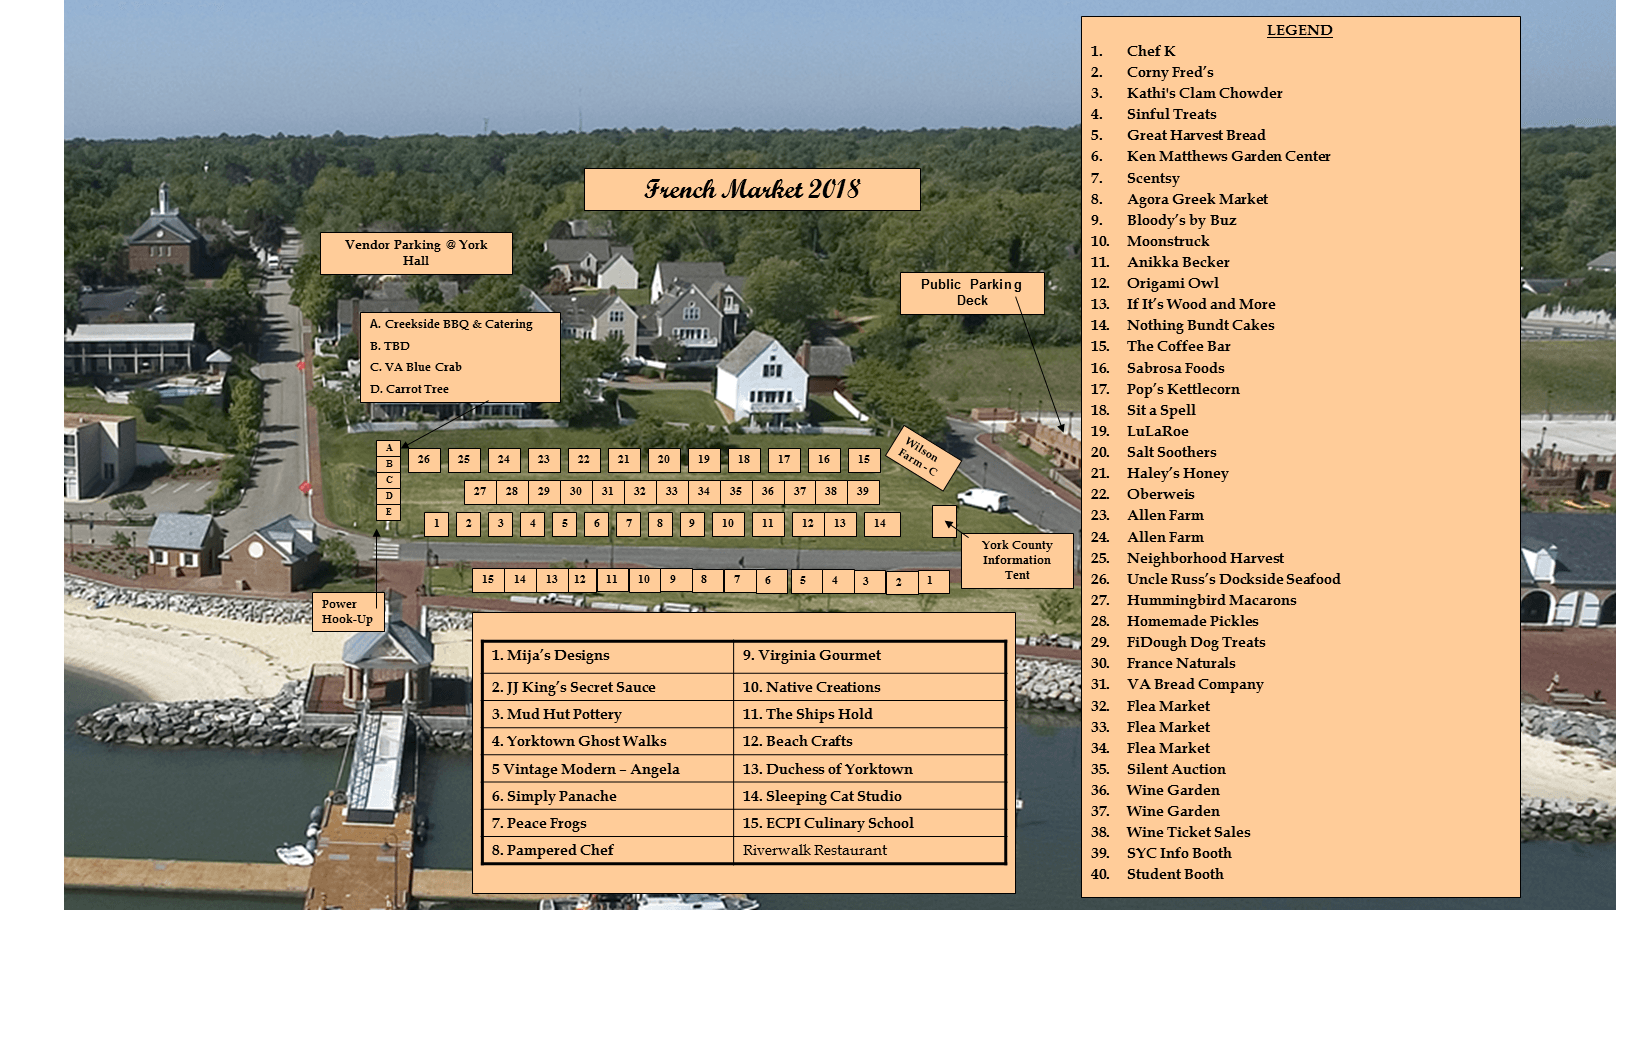 2018 French Market Site Plan